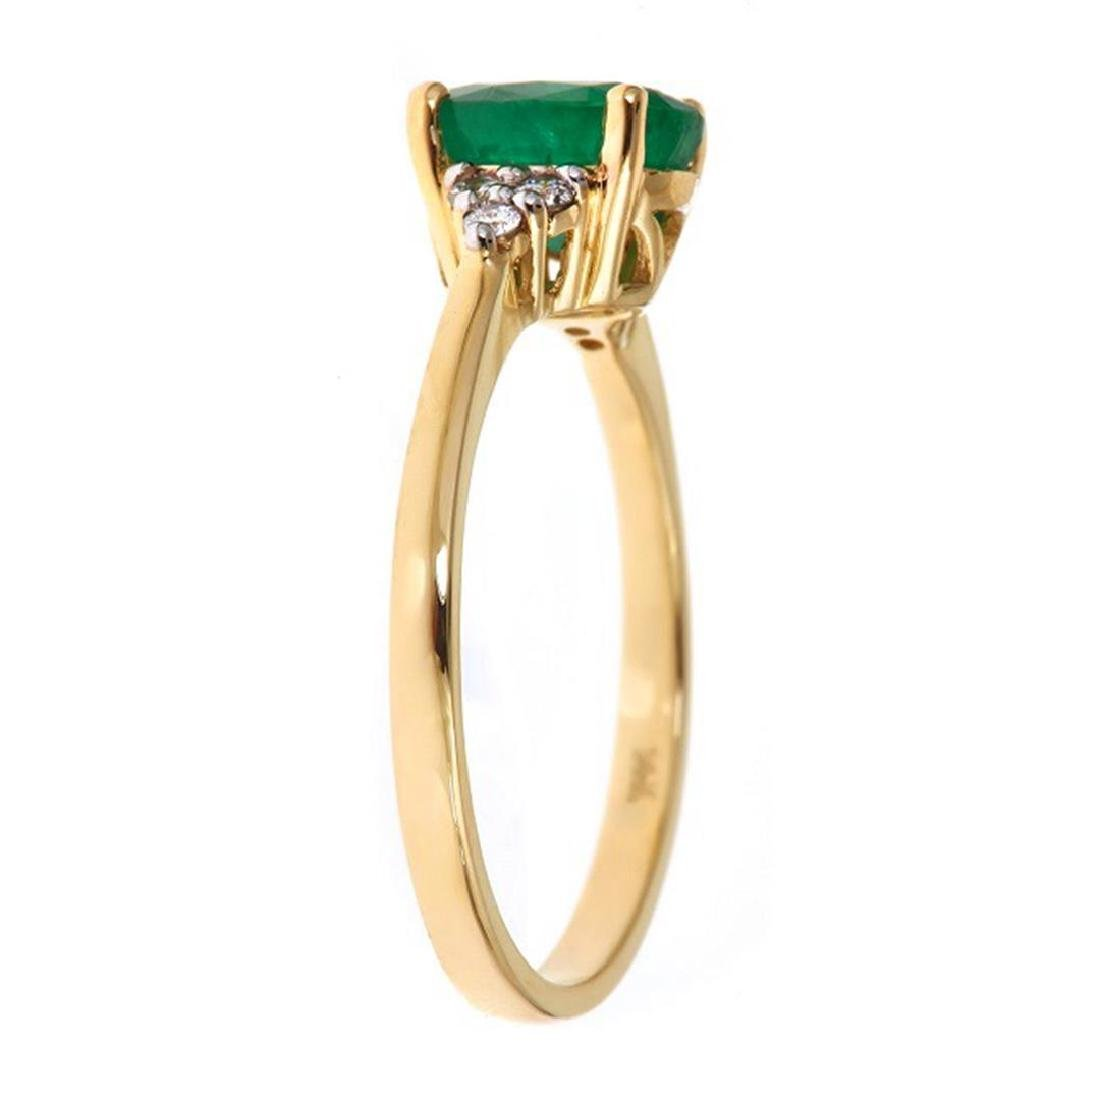 1.22 ctw Emerald and Diamond Ring - 14KT Yellow Gold - 2